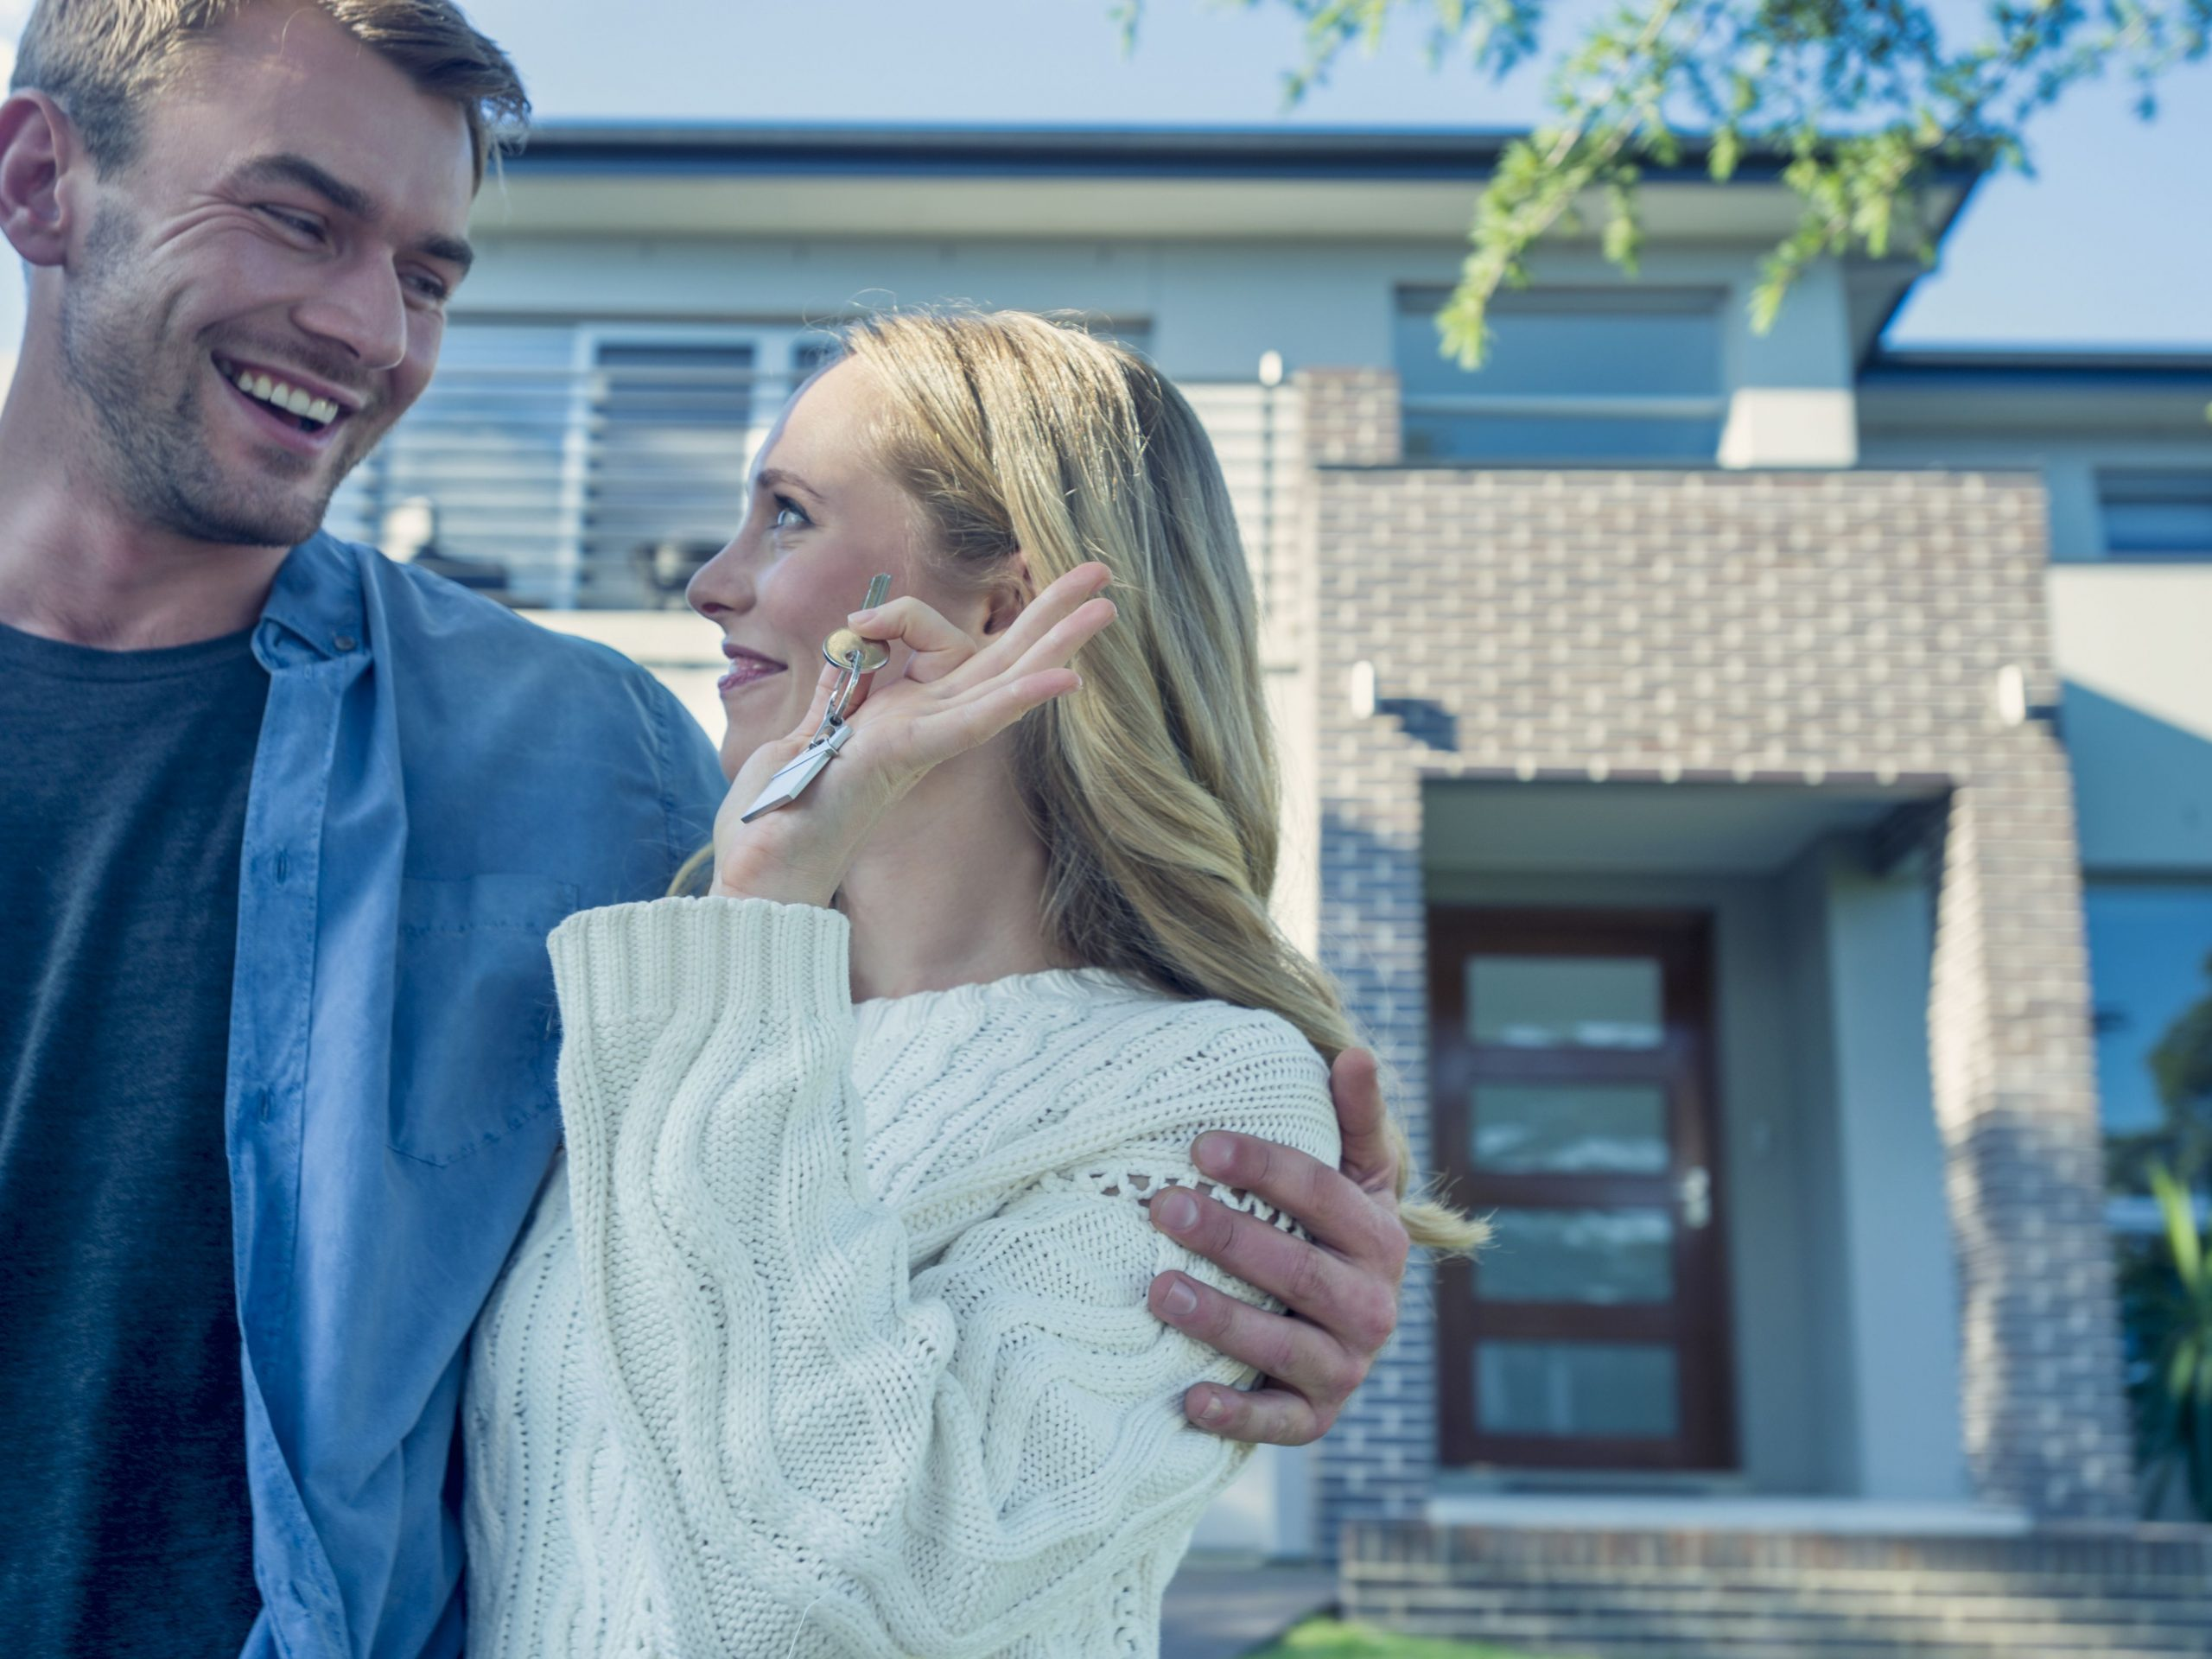 Things You Need to Know About Mortgage